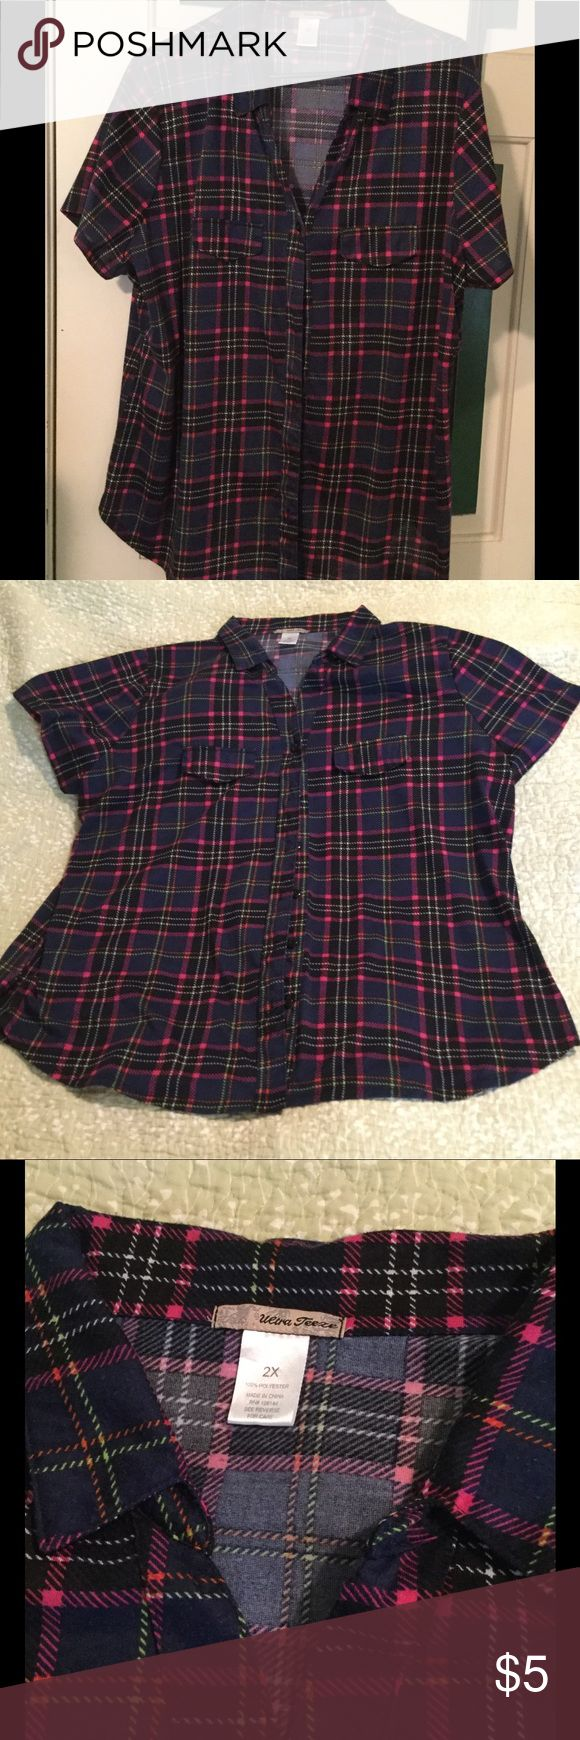 Women's plaid blouse Women's plaid blouse in pink, blue and white plaid.  Short sleeve, double pocket.  100% polyester.  Like new. ultra teeze Tops Blouses